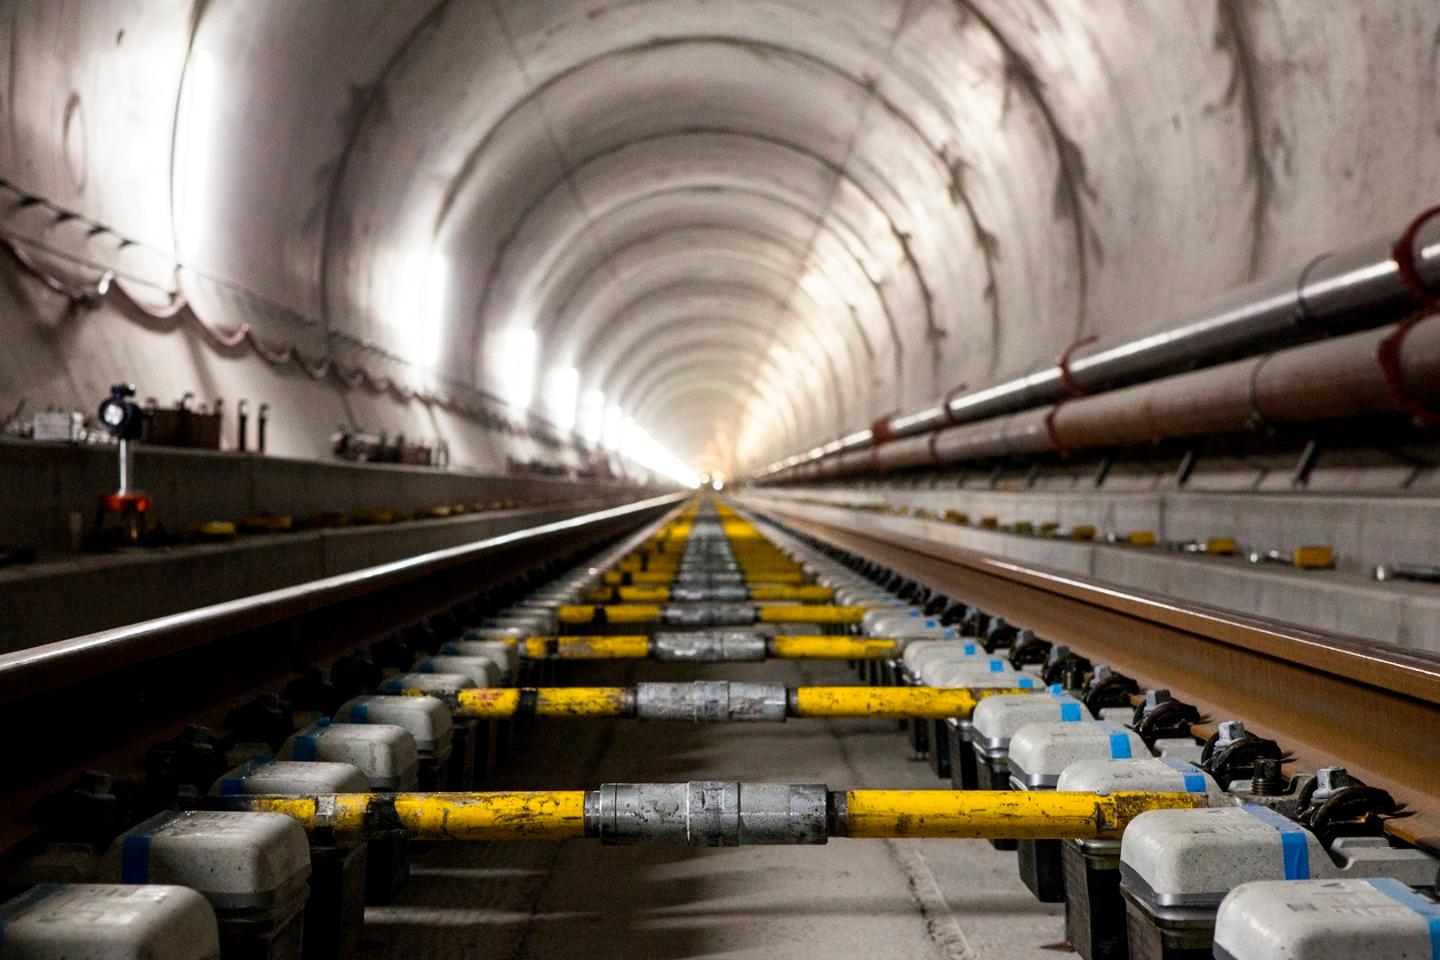 Including its two main tubes and the various shafts, cross passages and access tunnels, the Gotthard Base Tunnel has 152 km (94 mi) of tunnels